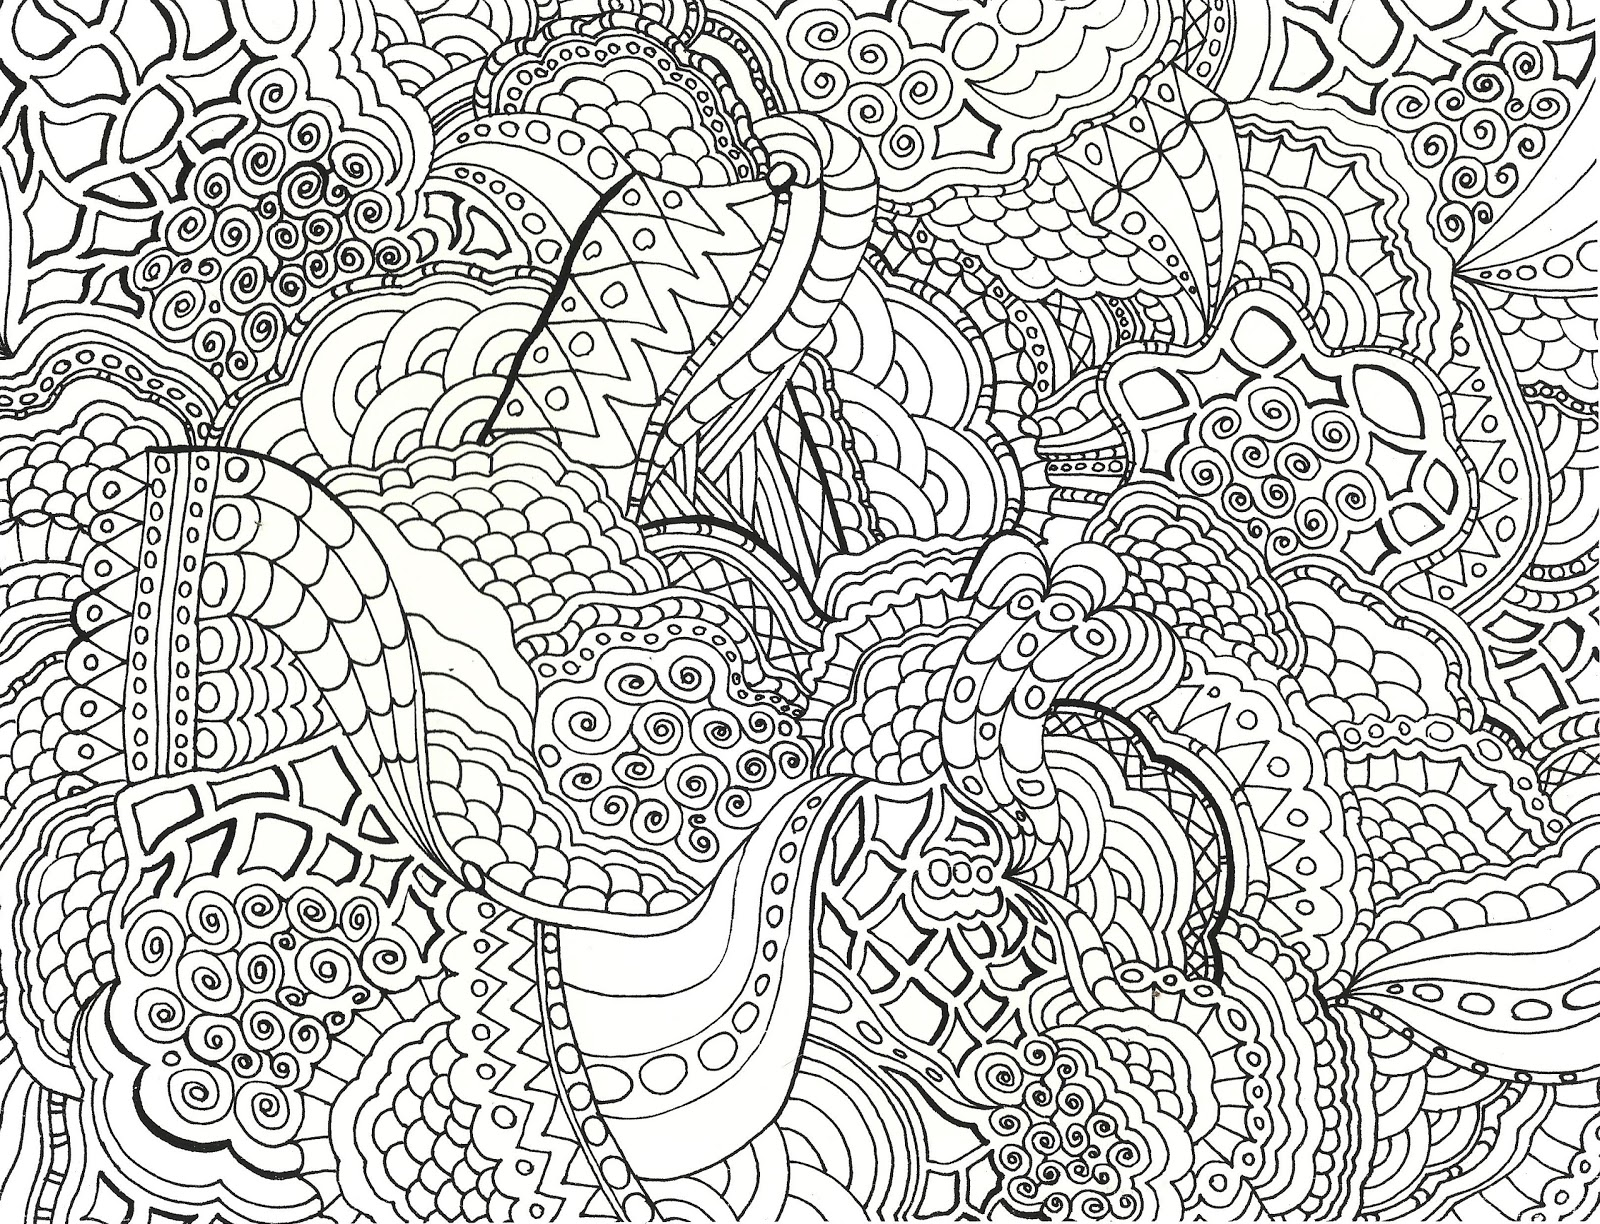 Unicorn - Printable Adult Coloring Page from Favoreads (Coloring ... | 1224x1600